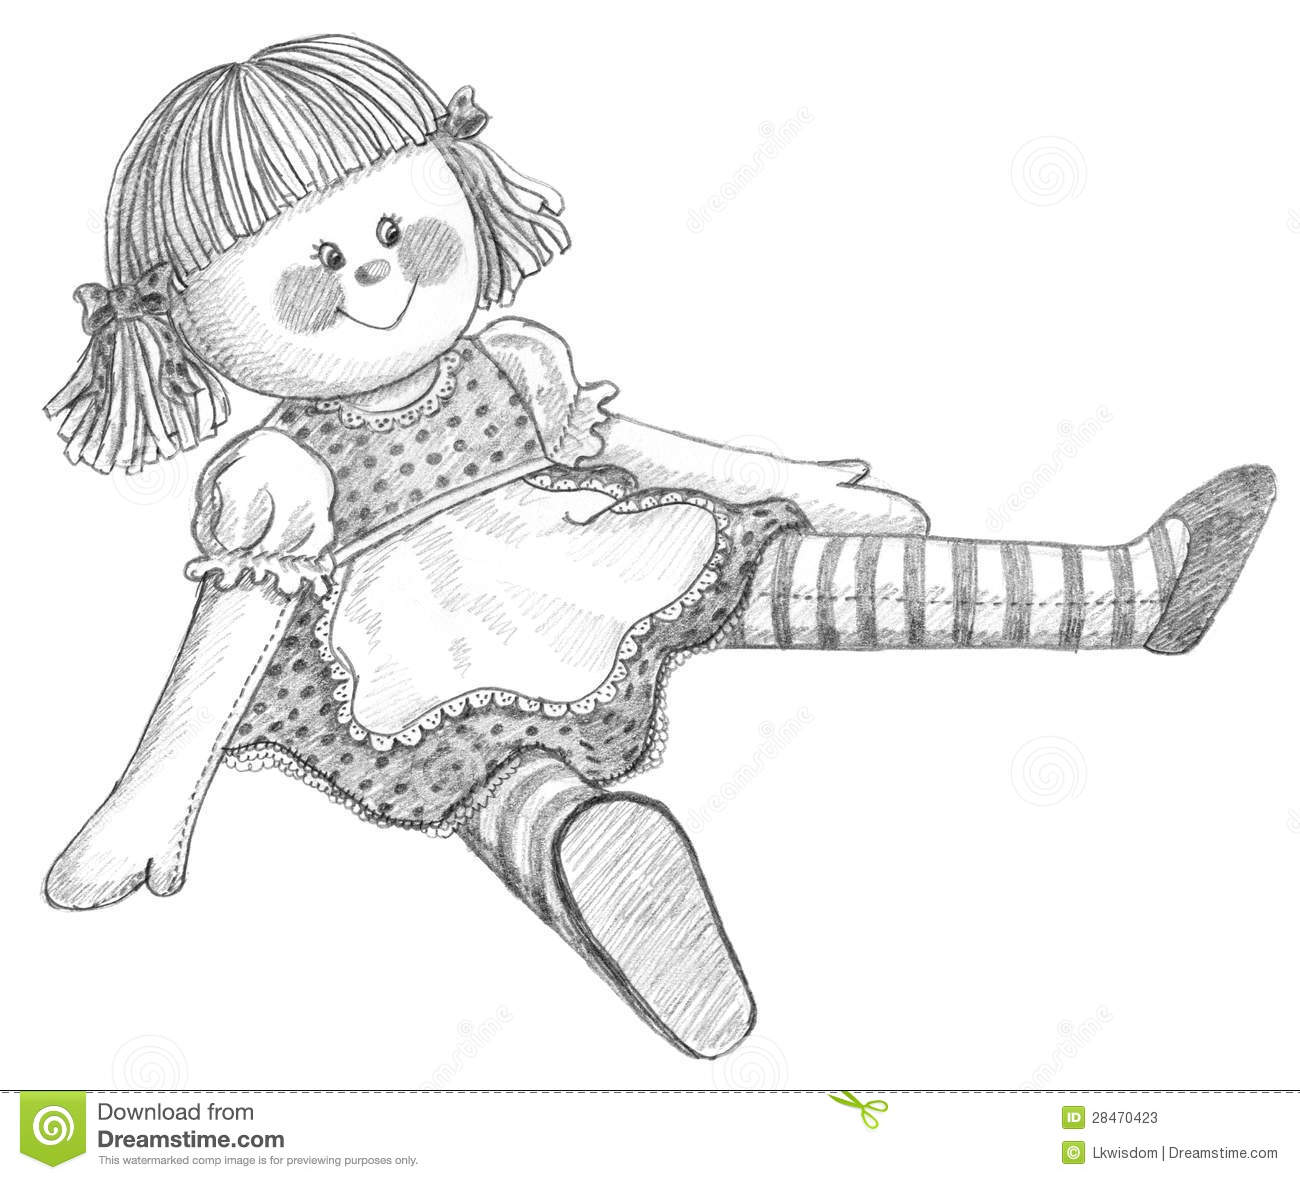 Pencil drawing doll stock illustrations 240 pencil drawing doll stock illustrations vectors clipart dreamstime